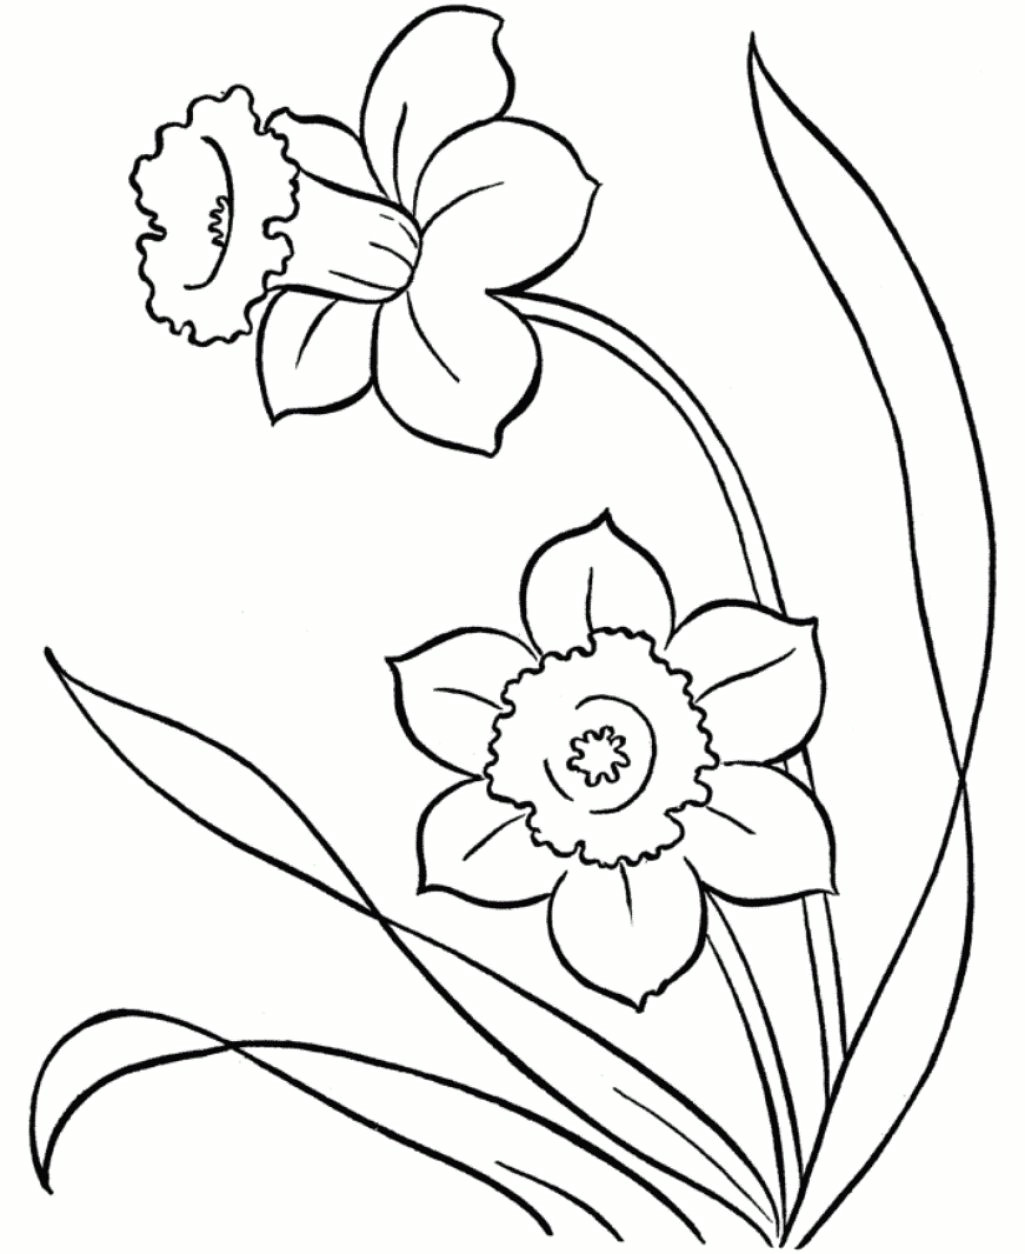 line drawings of snowdrops google search